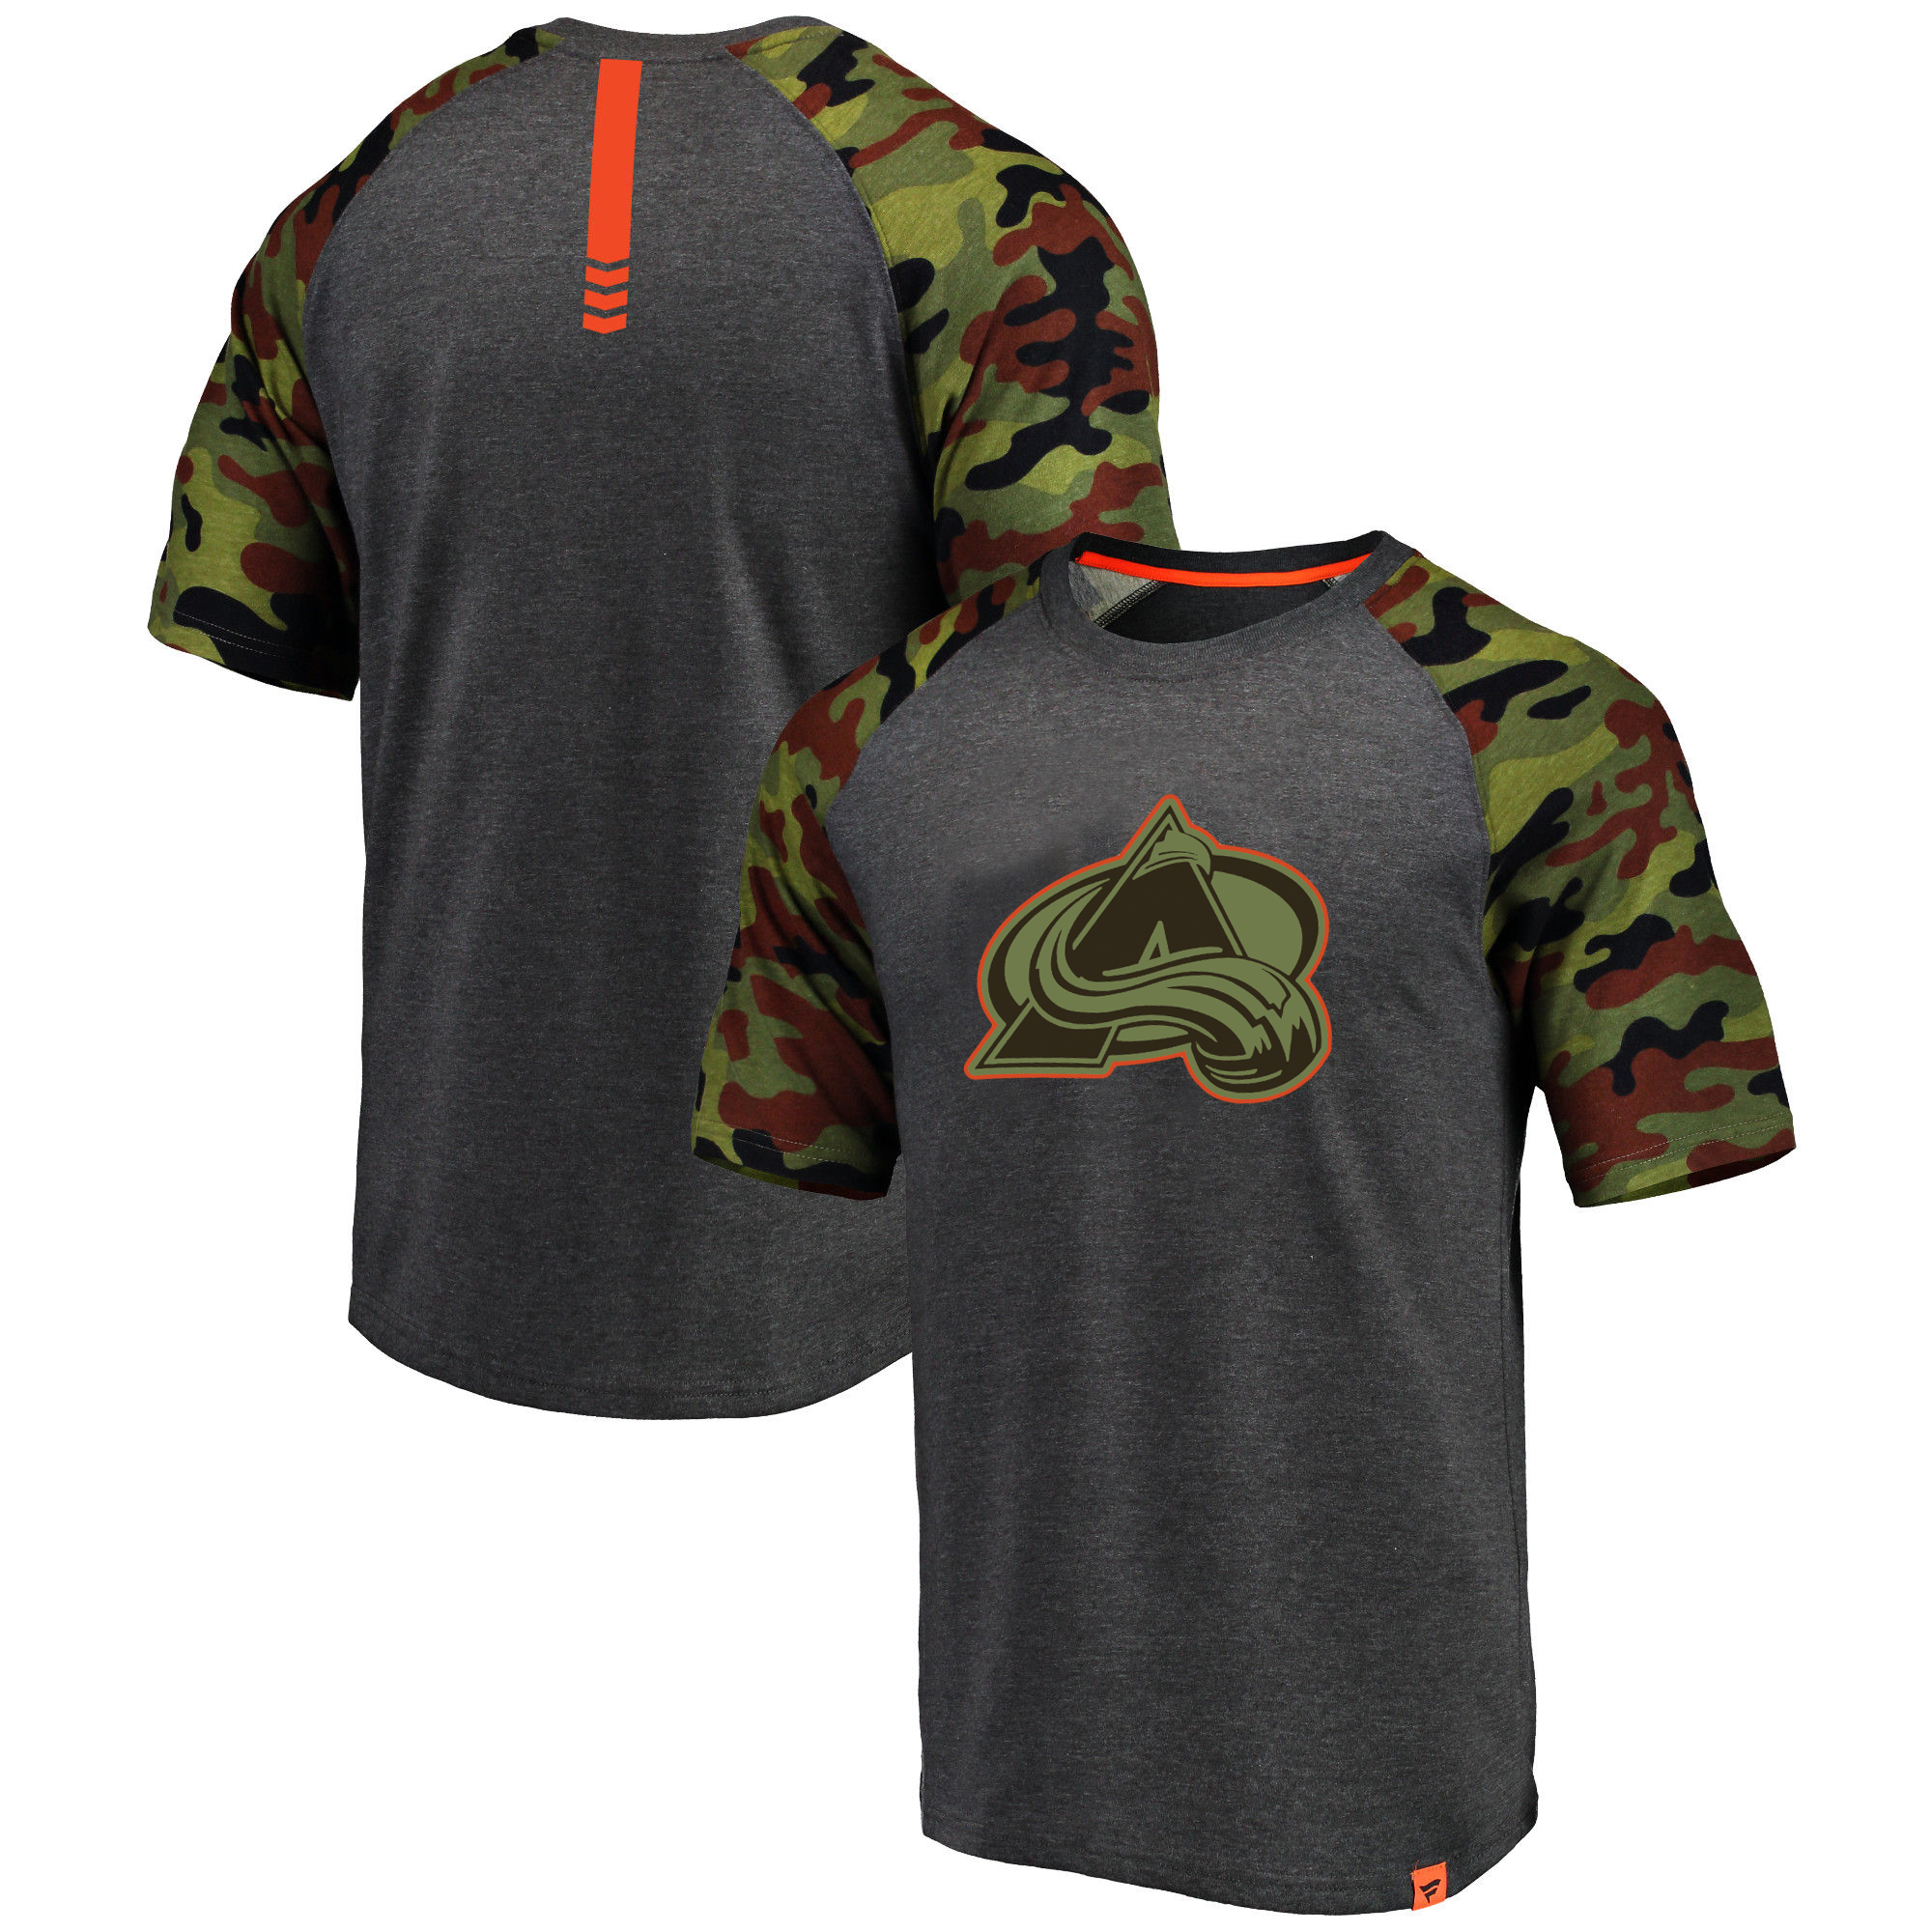 Colorado Avalanche Fanatics Branded Heathered Gray/Camo Recon Camo Raglan T-Shirt